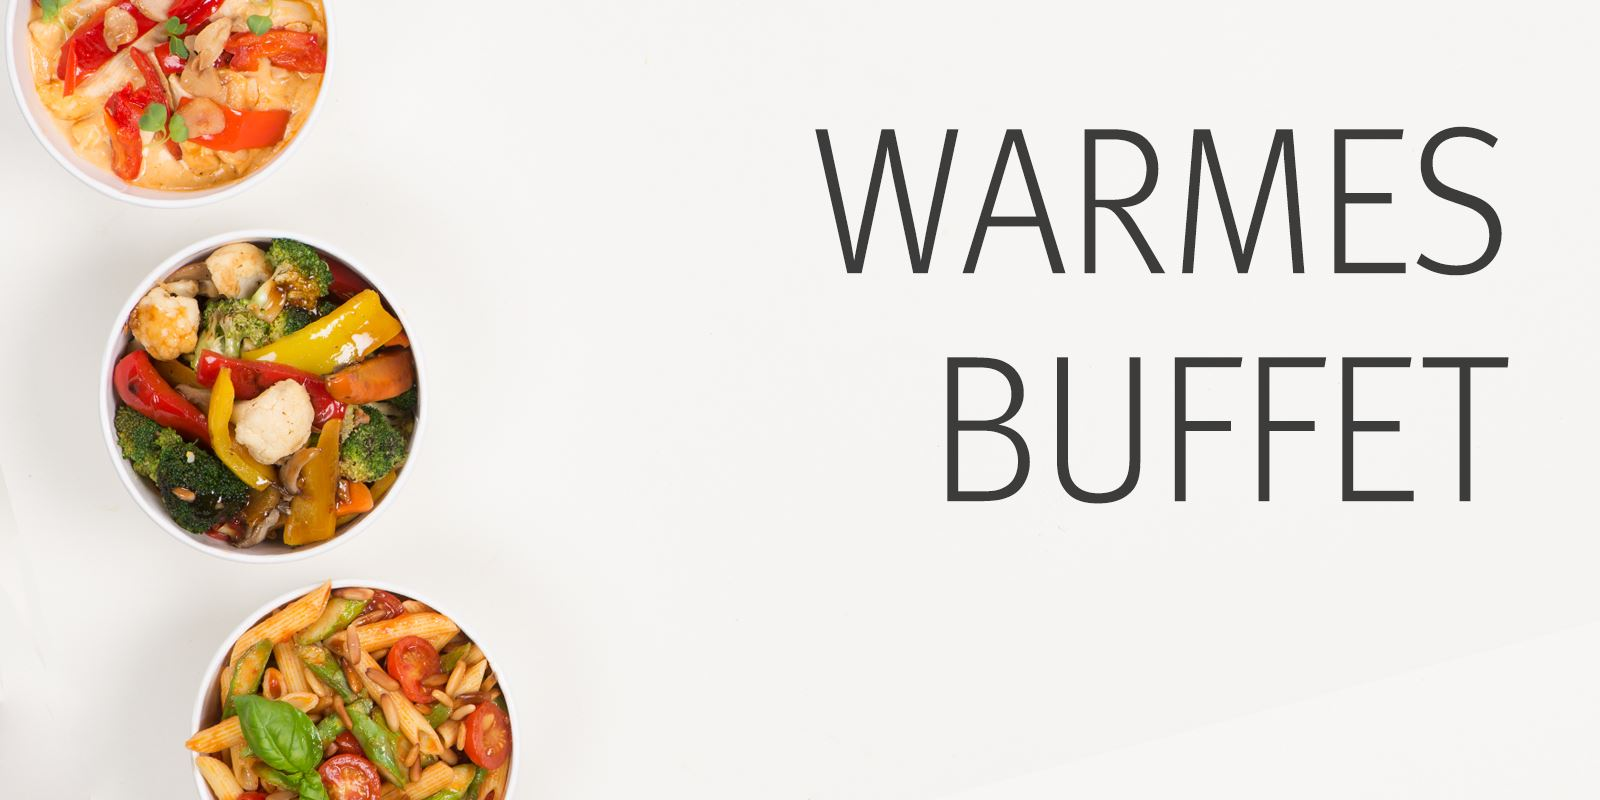 Warmes Buffet